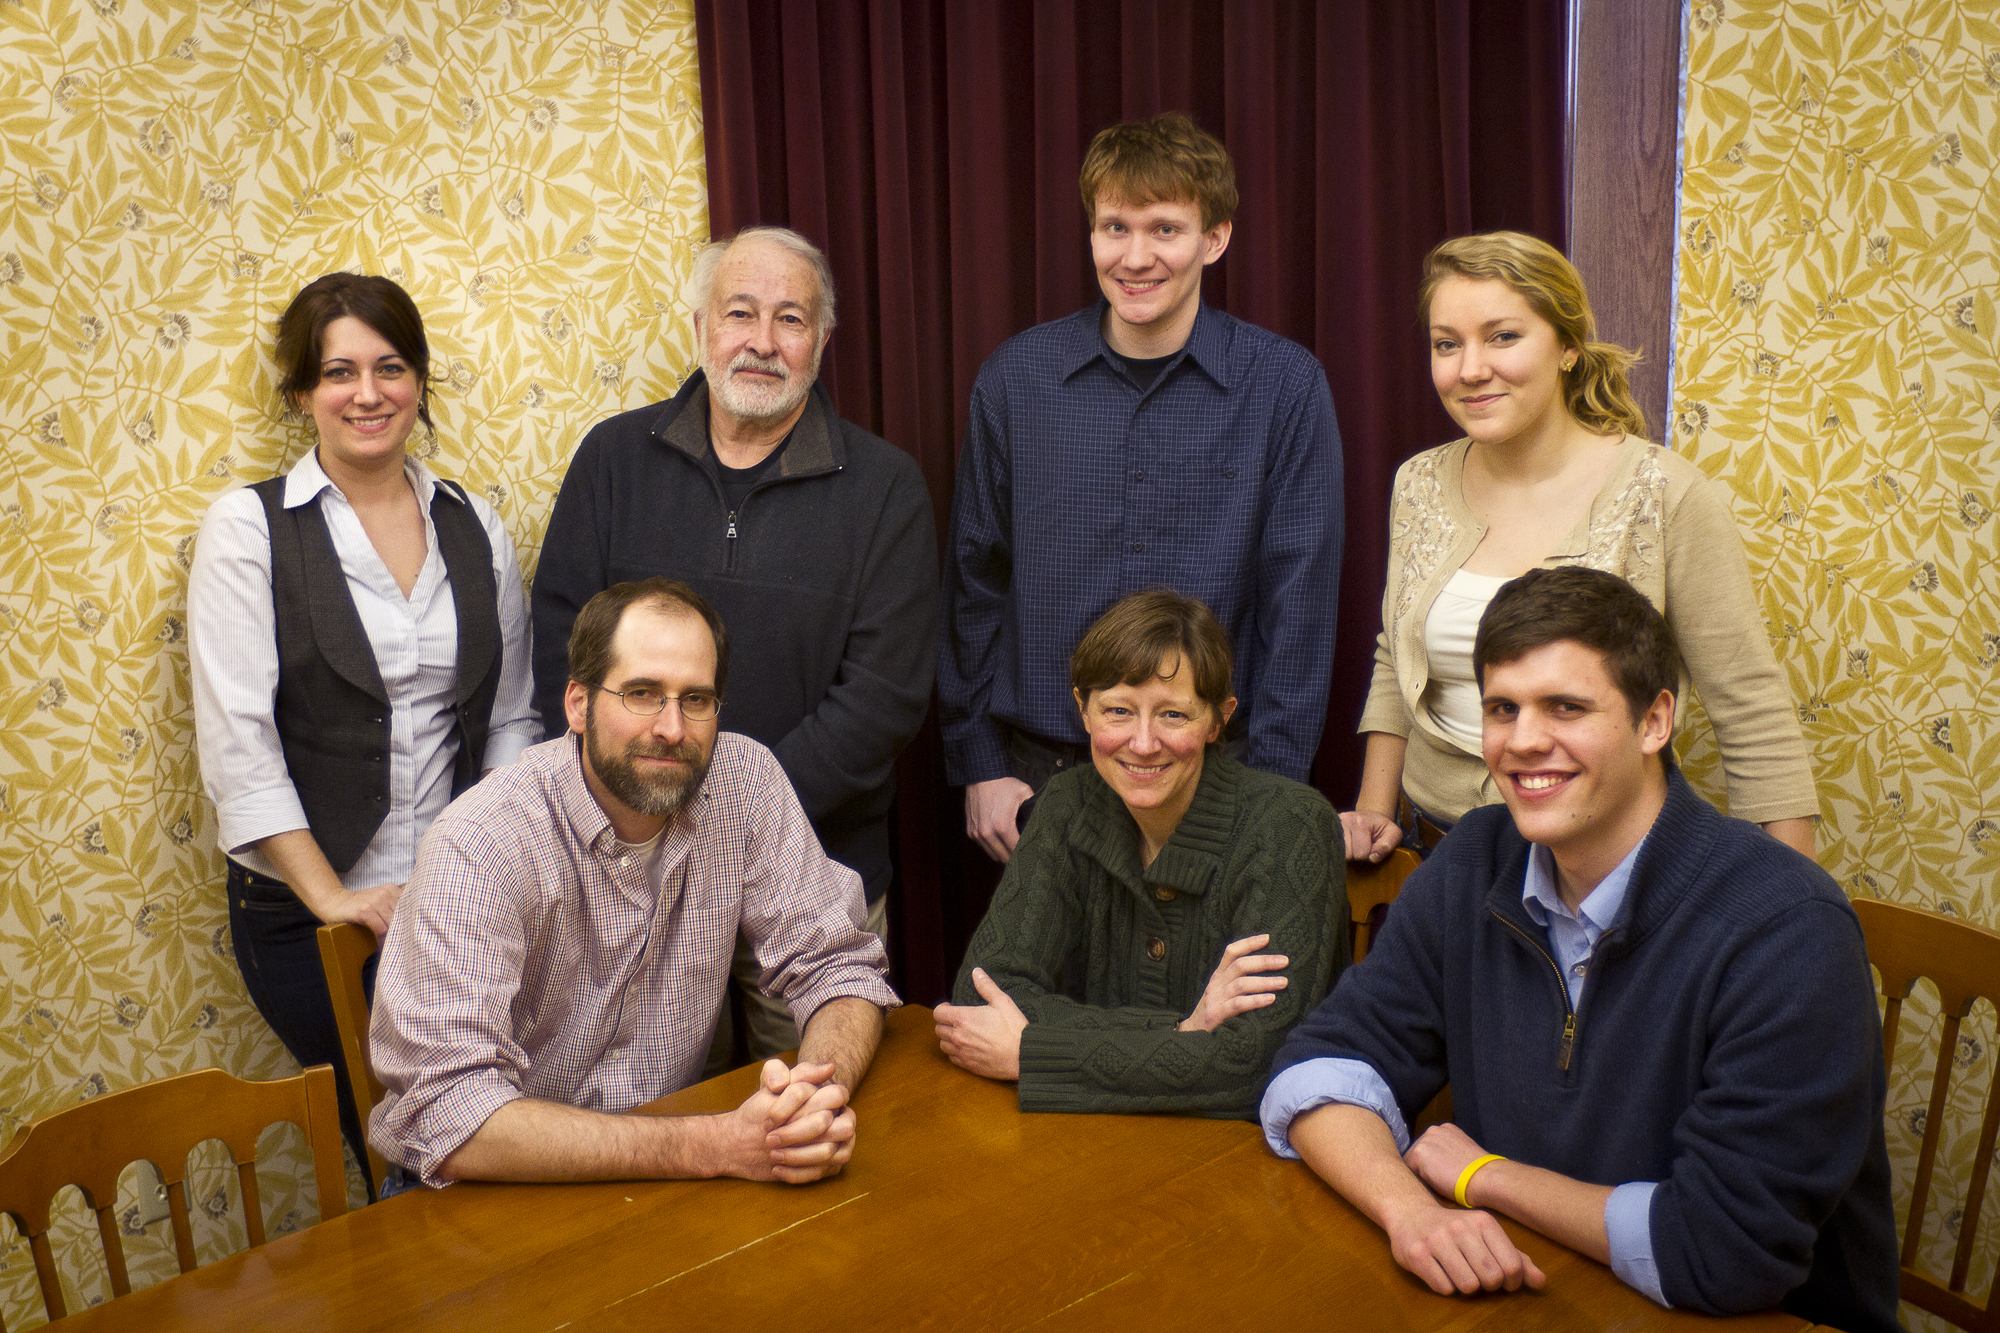 Front row, left to right: Monty Roper, Board Member, Pastor Kirsten Klepfer, Treasurer, Kyle Walters.  Back Row: Grace Philipp, Doug Caulkins, Board President; Noah Most (co-facilitator), Kathy Andersen (co-facilitator).  Not shown,  Jeff Raderstrong (Secretary) and Emily Kugisaki (board member)